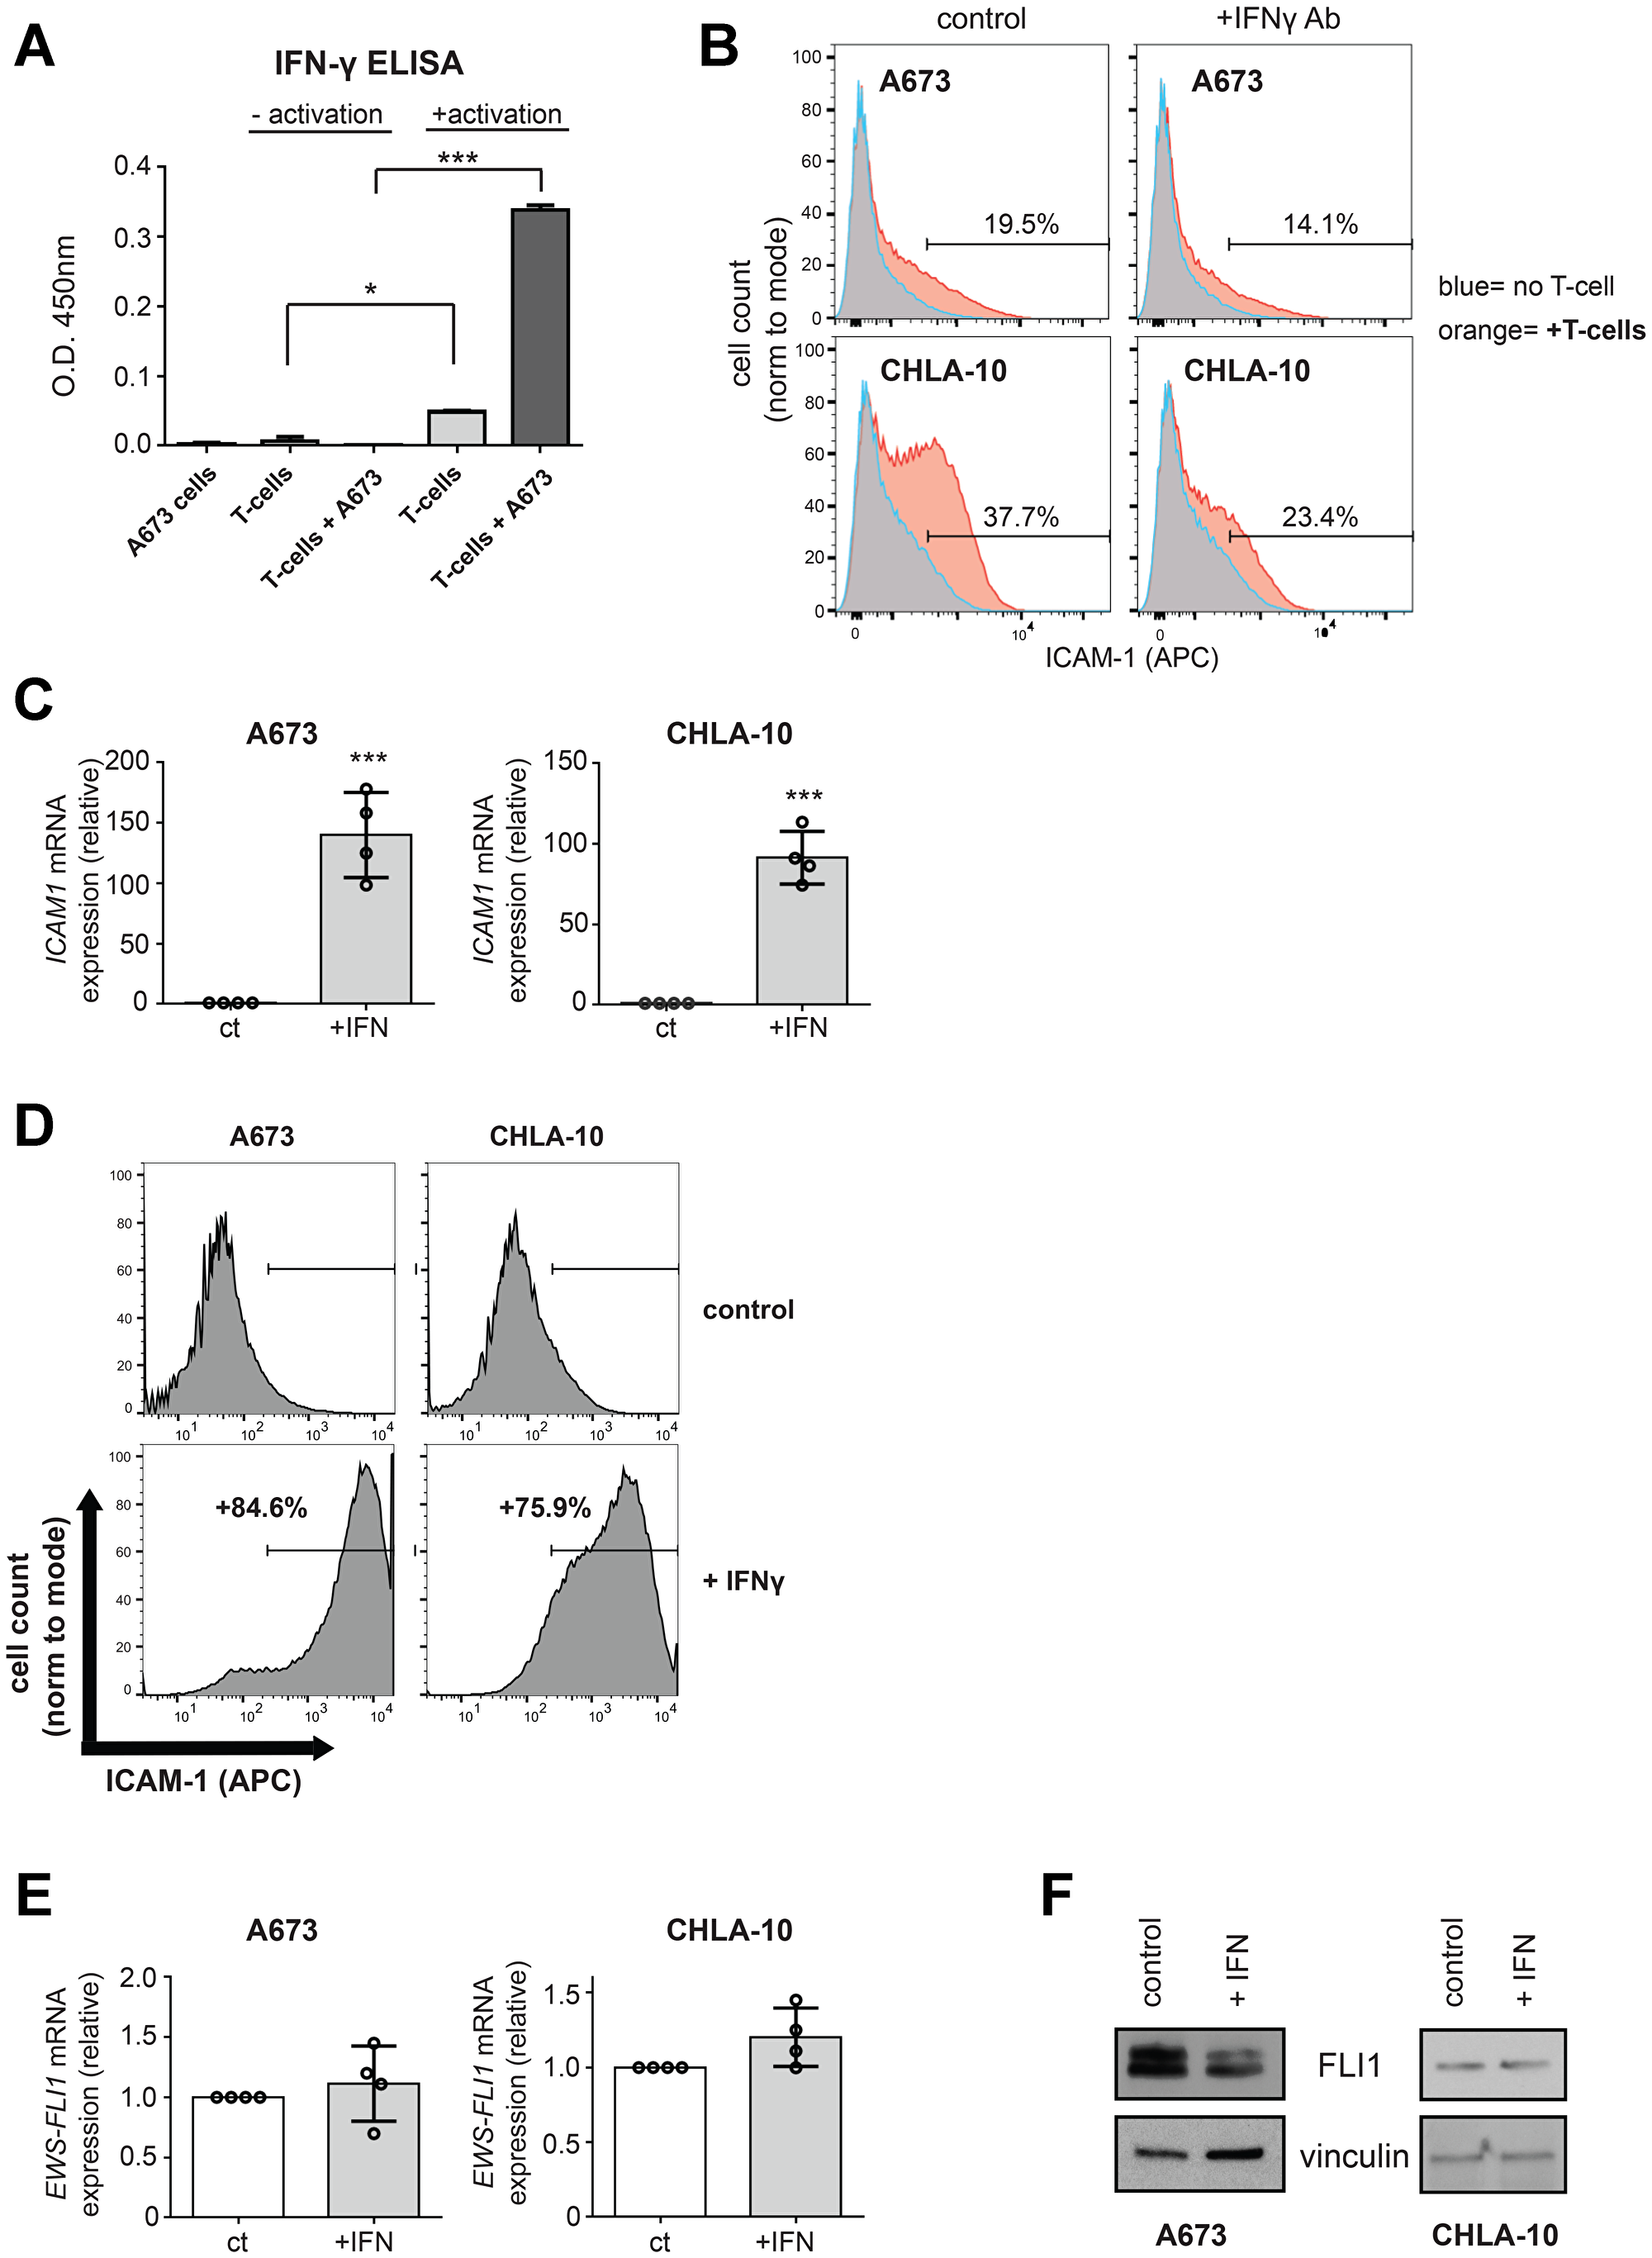 IFN-γ mediated increases in Ewing tumor cell ICAM-1 expression can occur in the absence of changes in EWS-FLI1 expression.